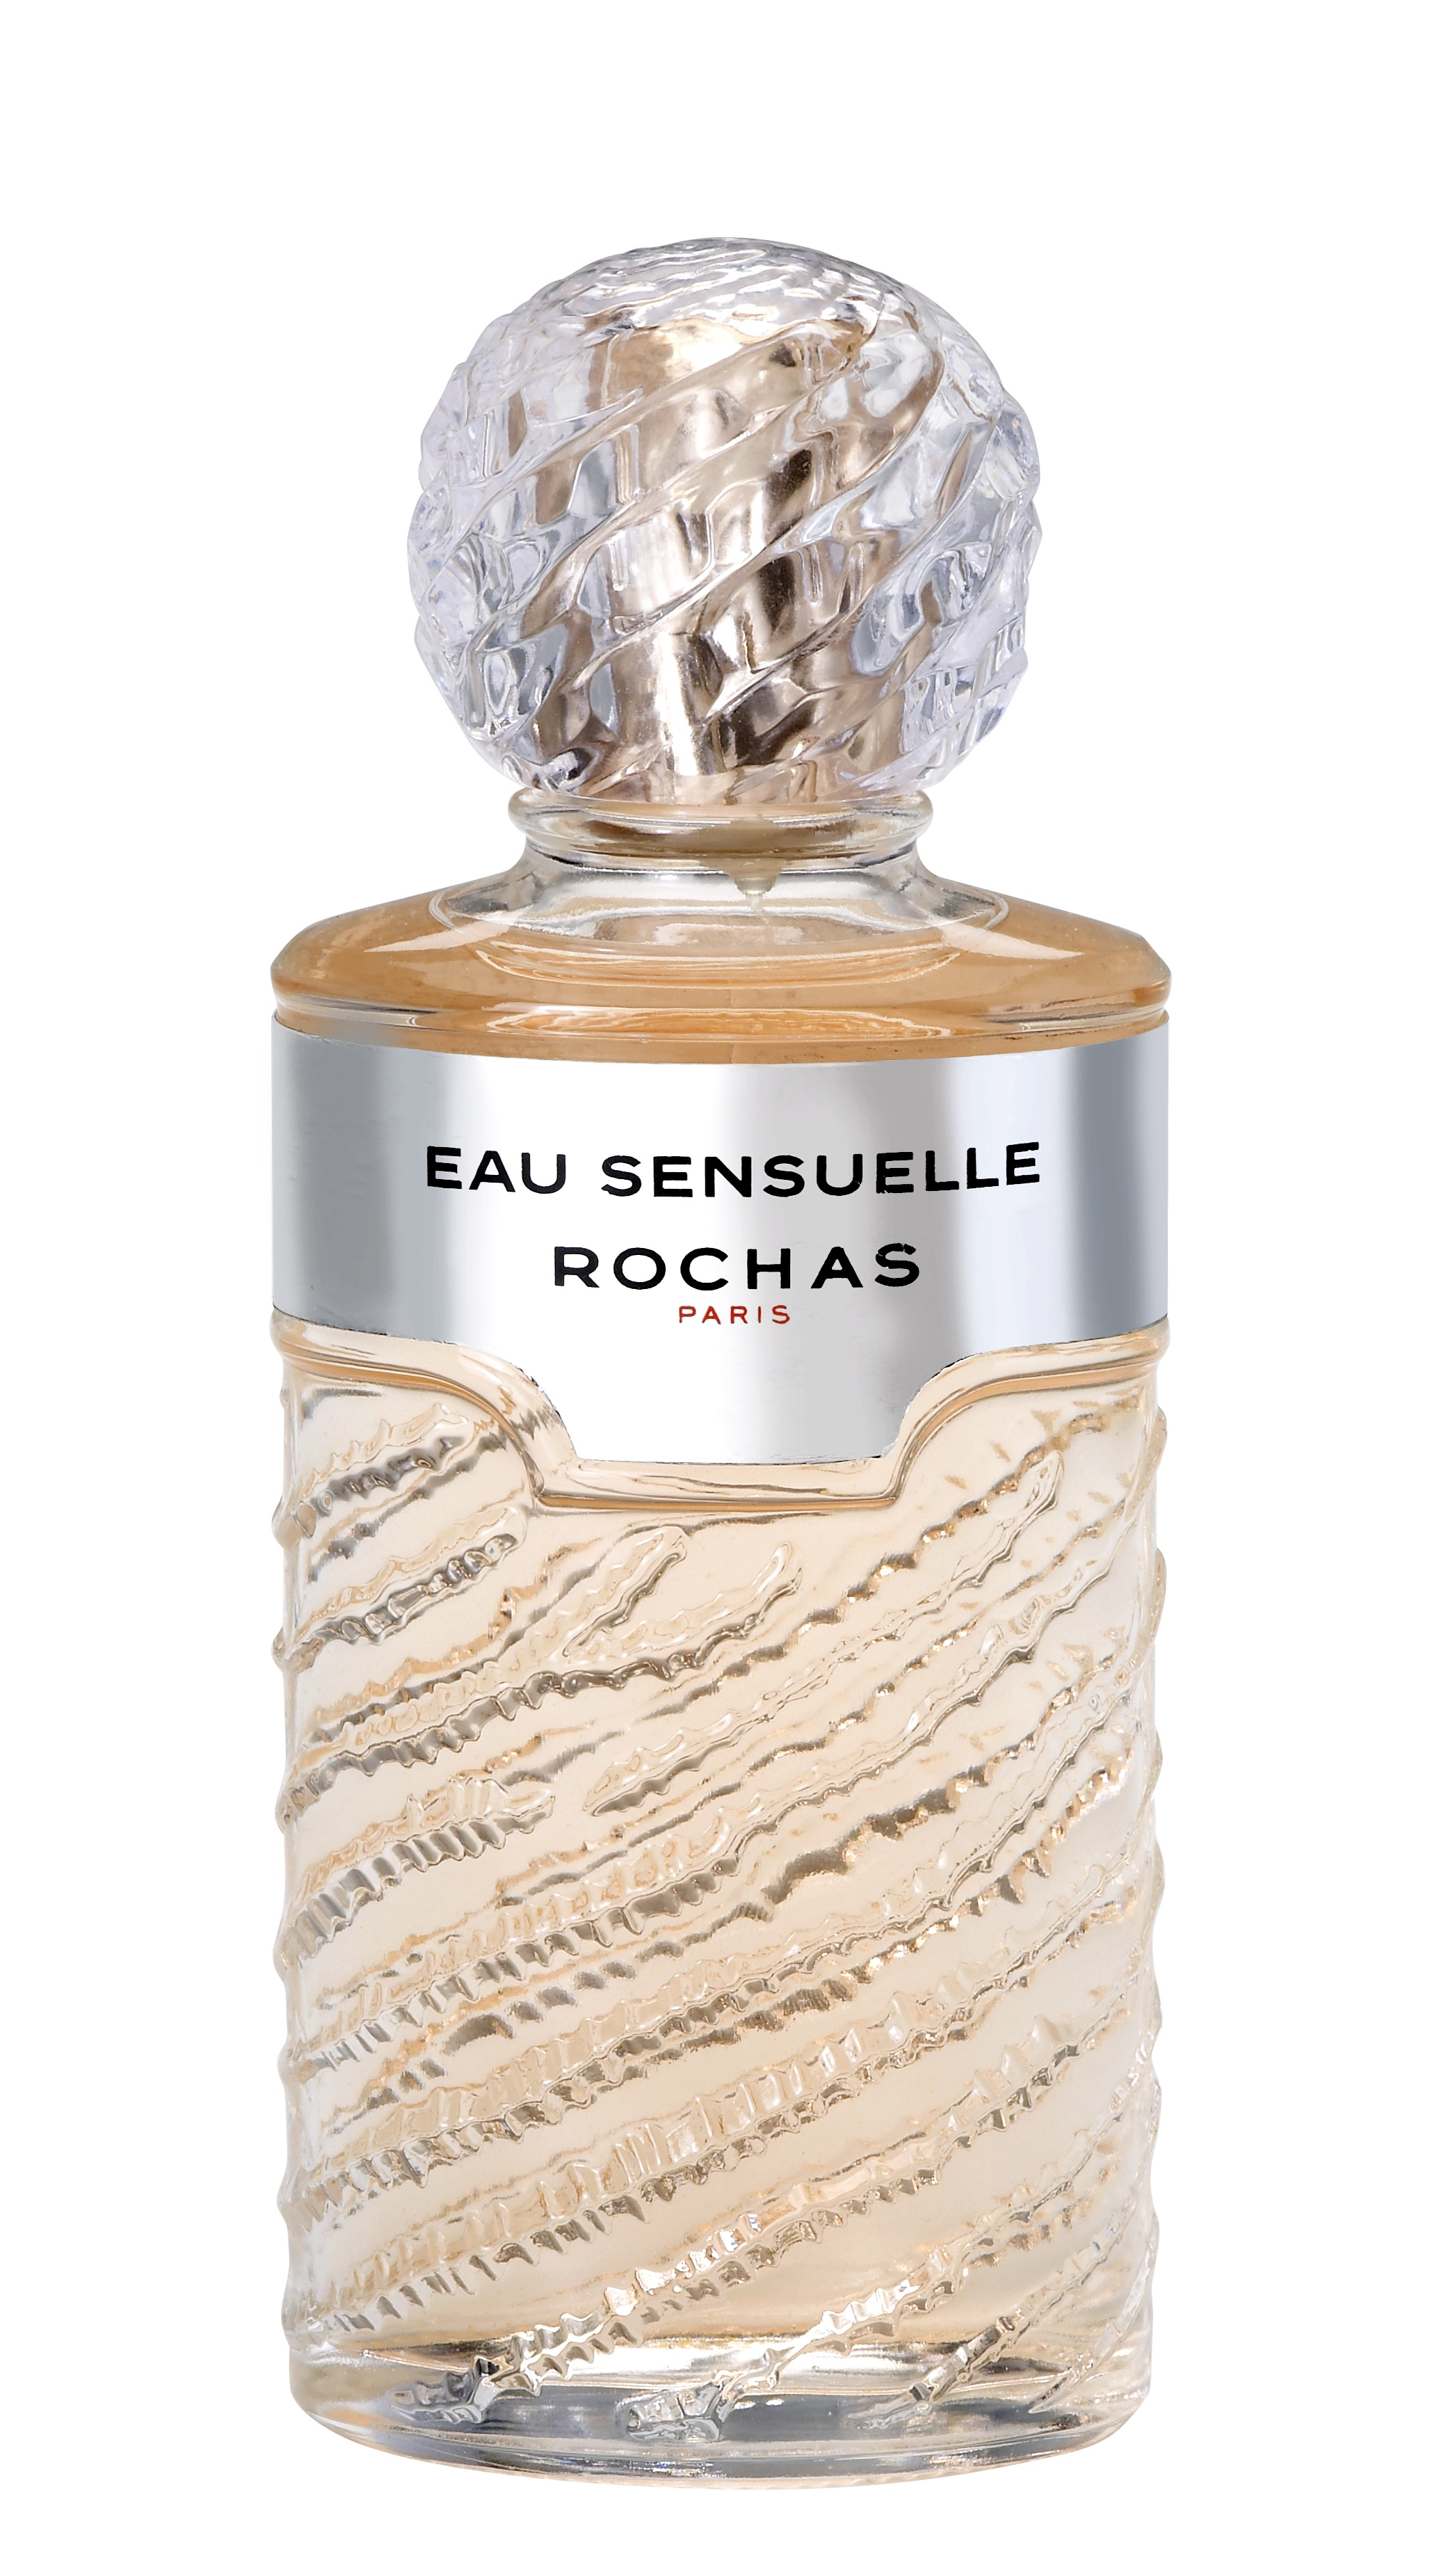 parfums frais chez rochas faire le tour du monde en parfums faire le tour du monde en parfums. Black Bedroom Furniture Sets. Home Design Ideas